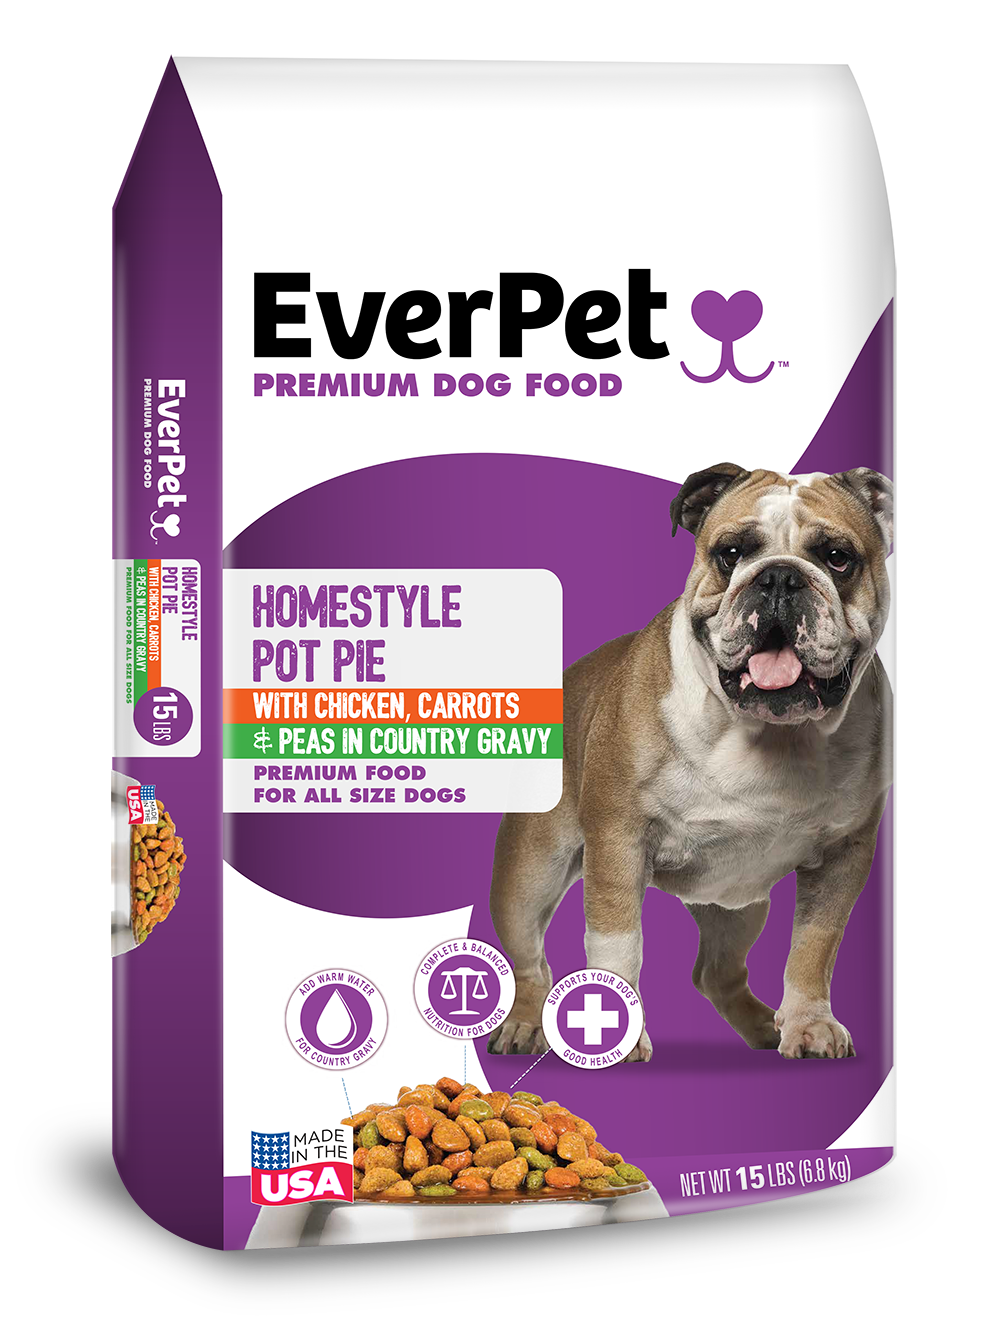 Everpet Dog Food